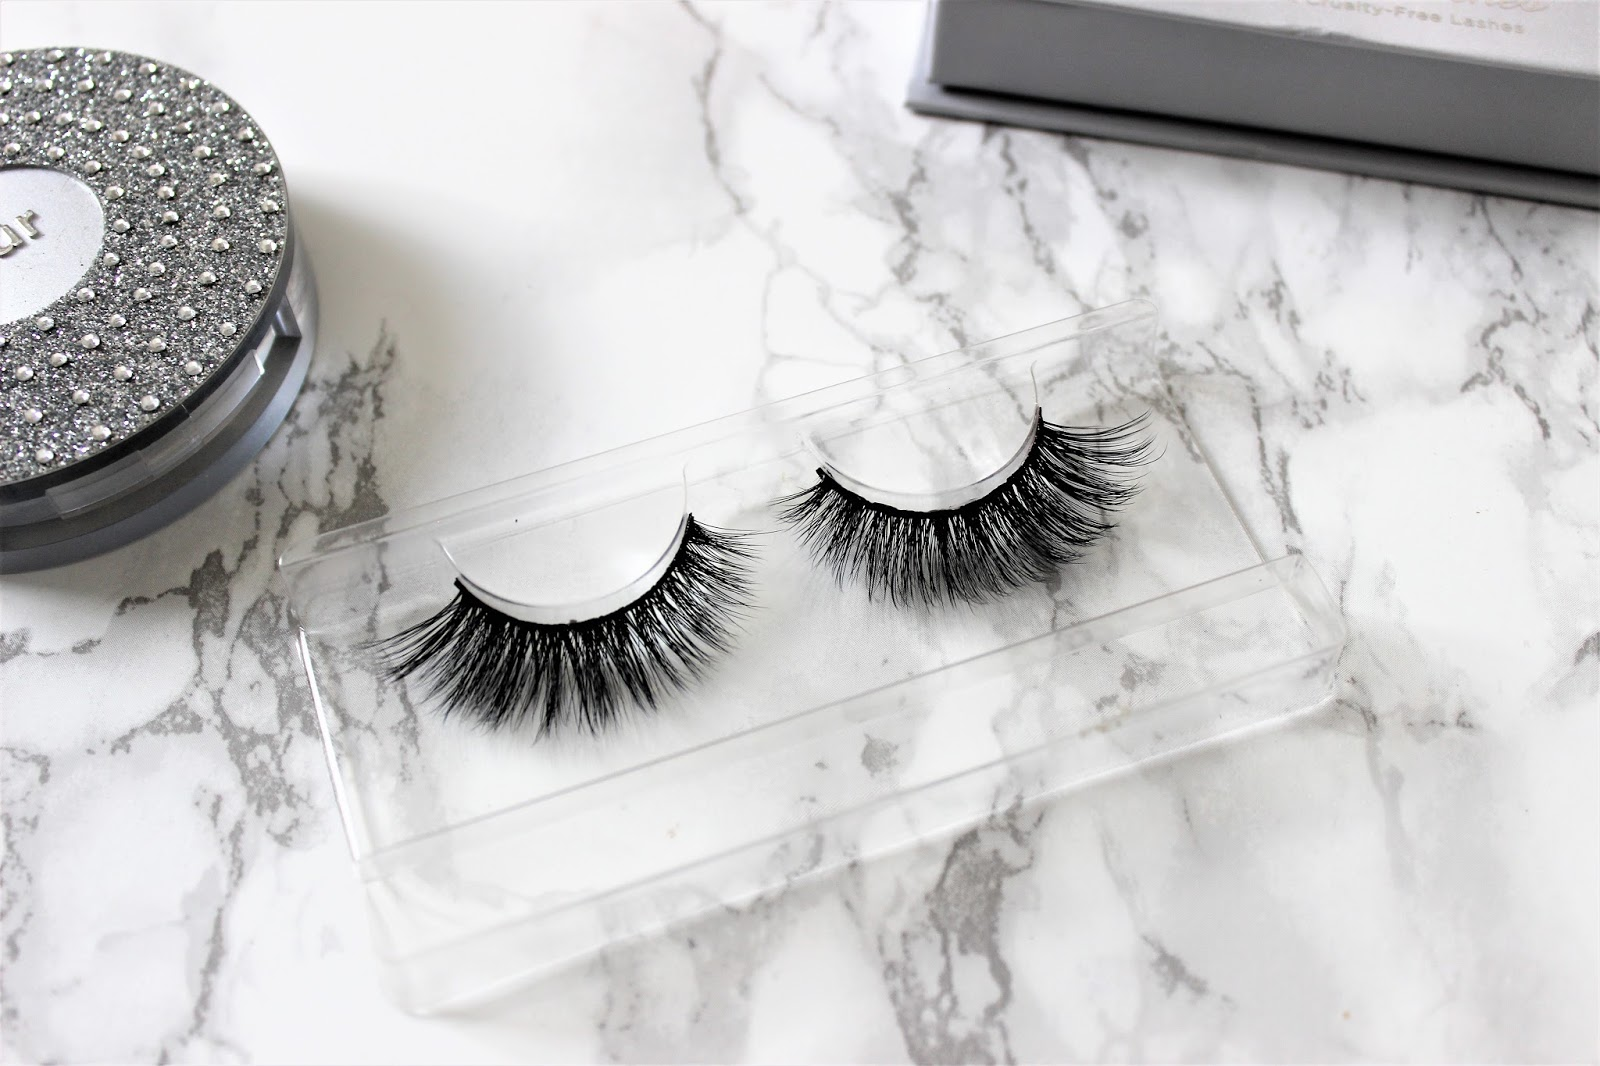 Pur Bombshell lashes